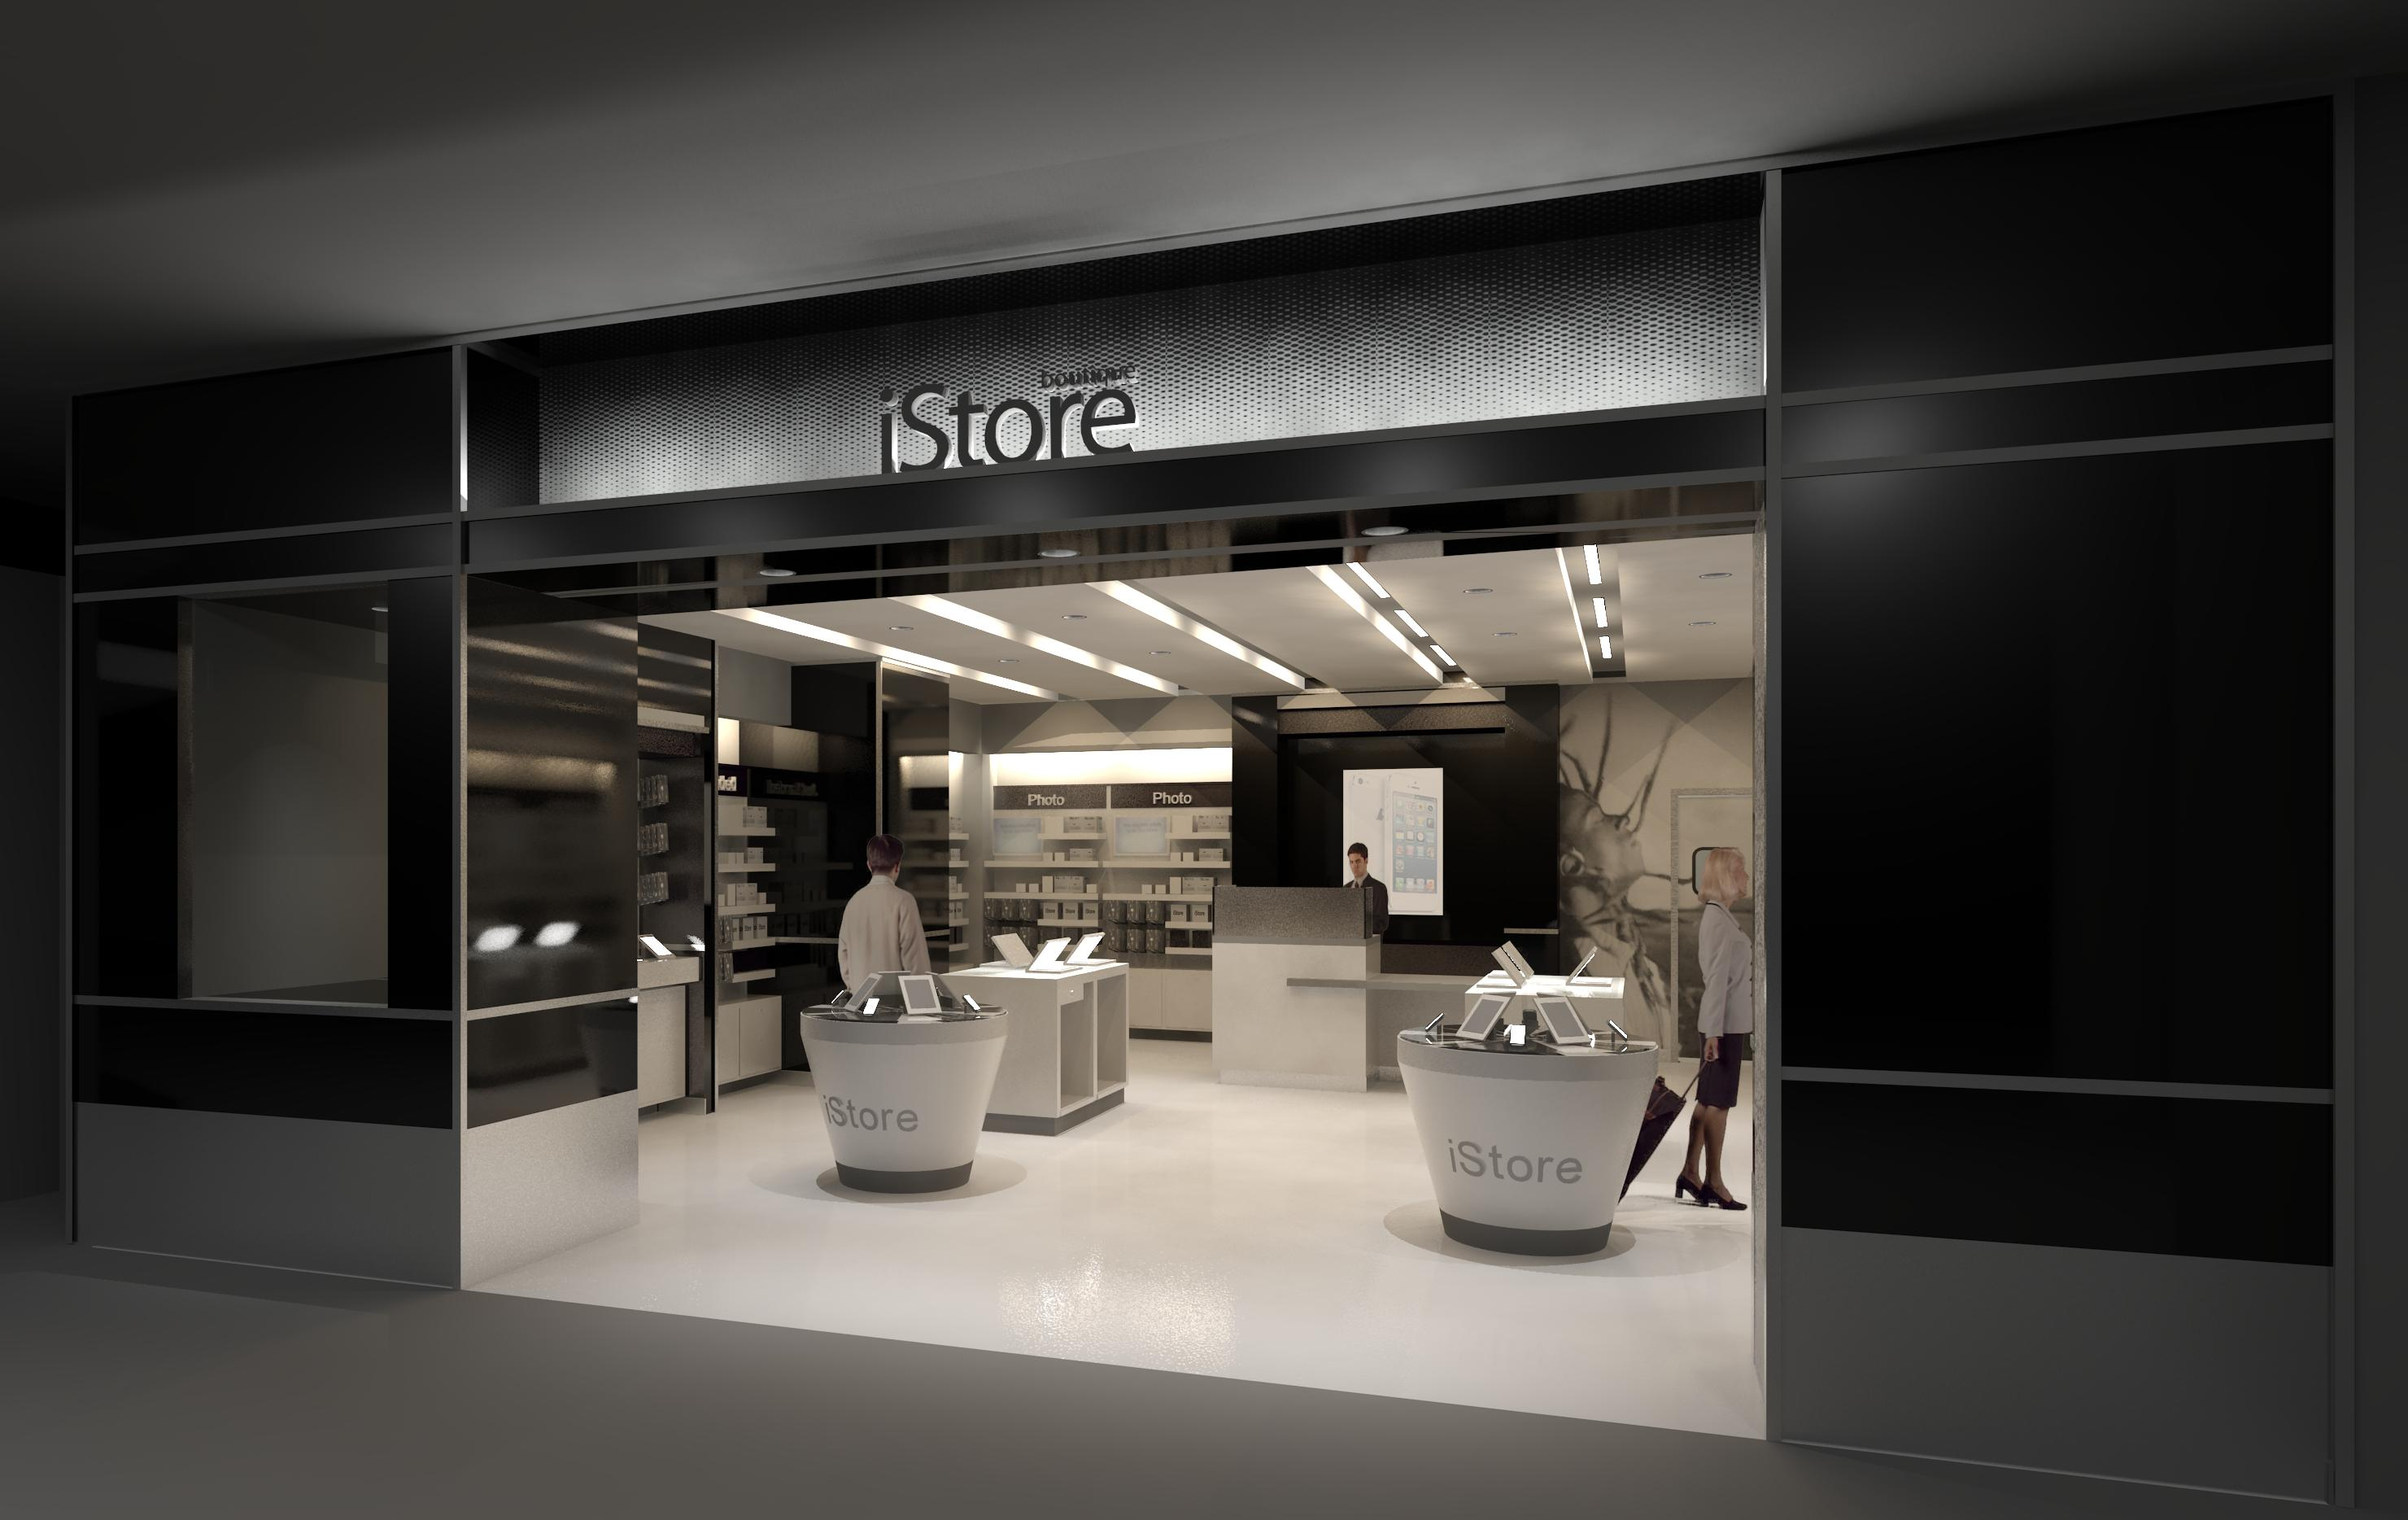 iStore: IAH, Houston, Texas